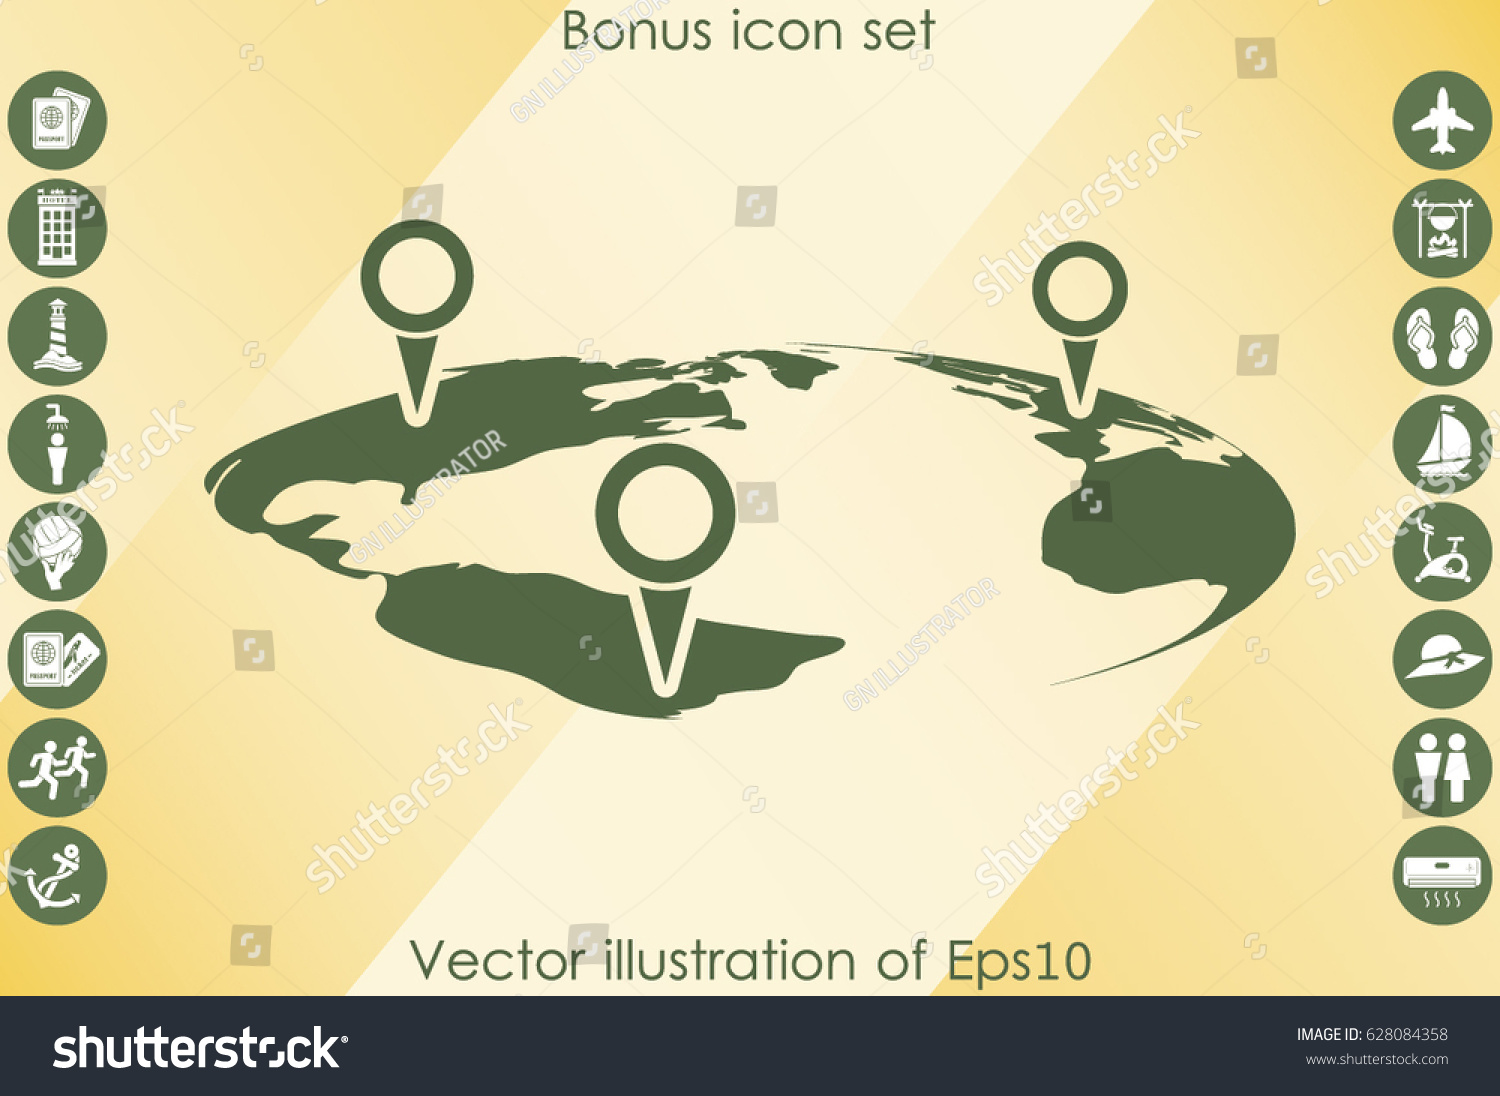 World map pointer marks icon vector stock vector 628084358 world map with pointer marks icon vector eps 10 abstract sign flat design illustration gumiabroncs Images